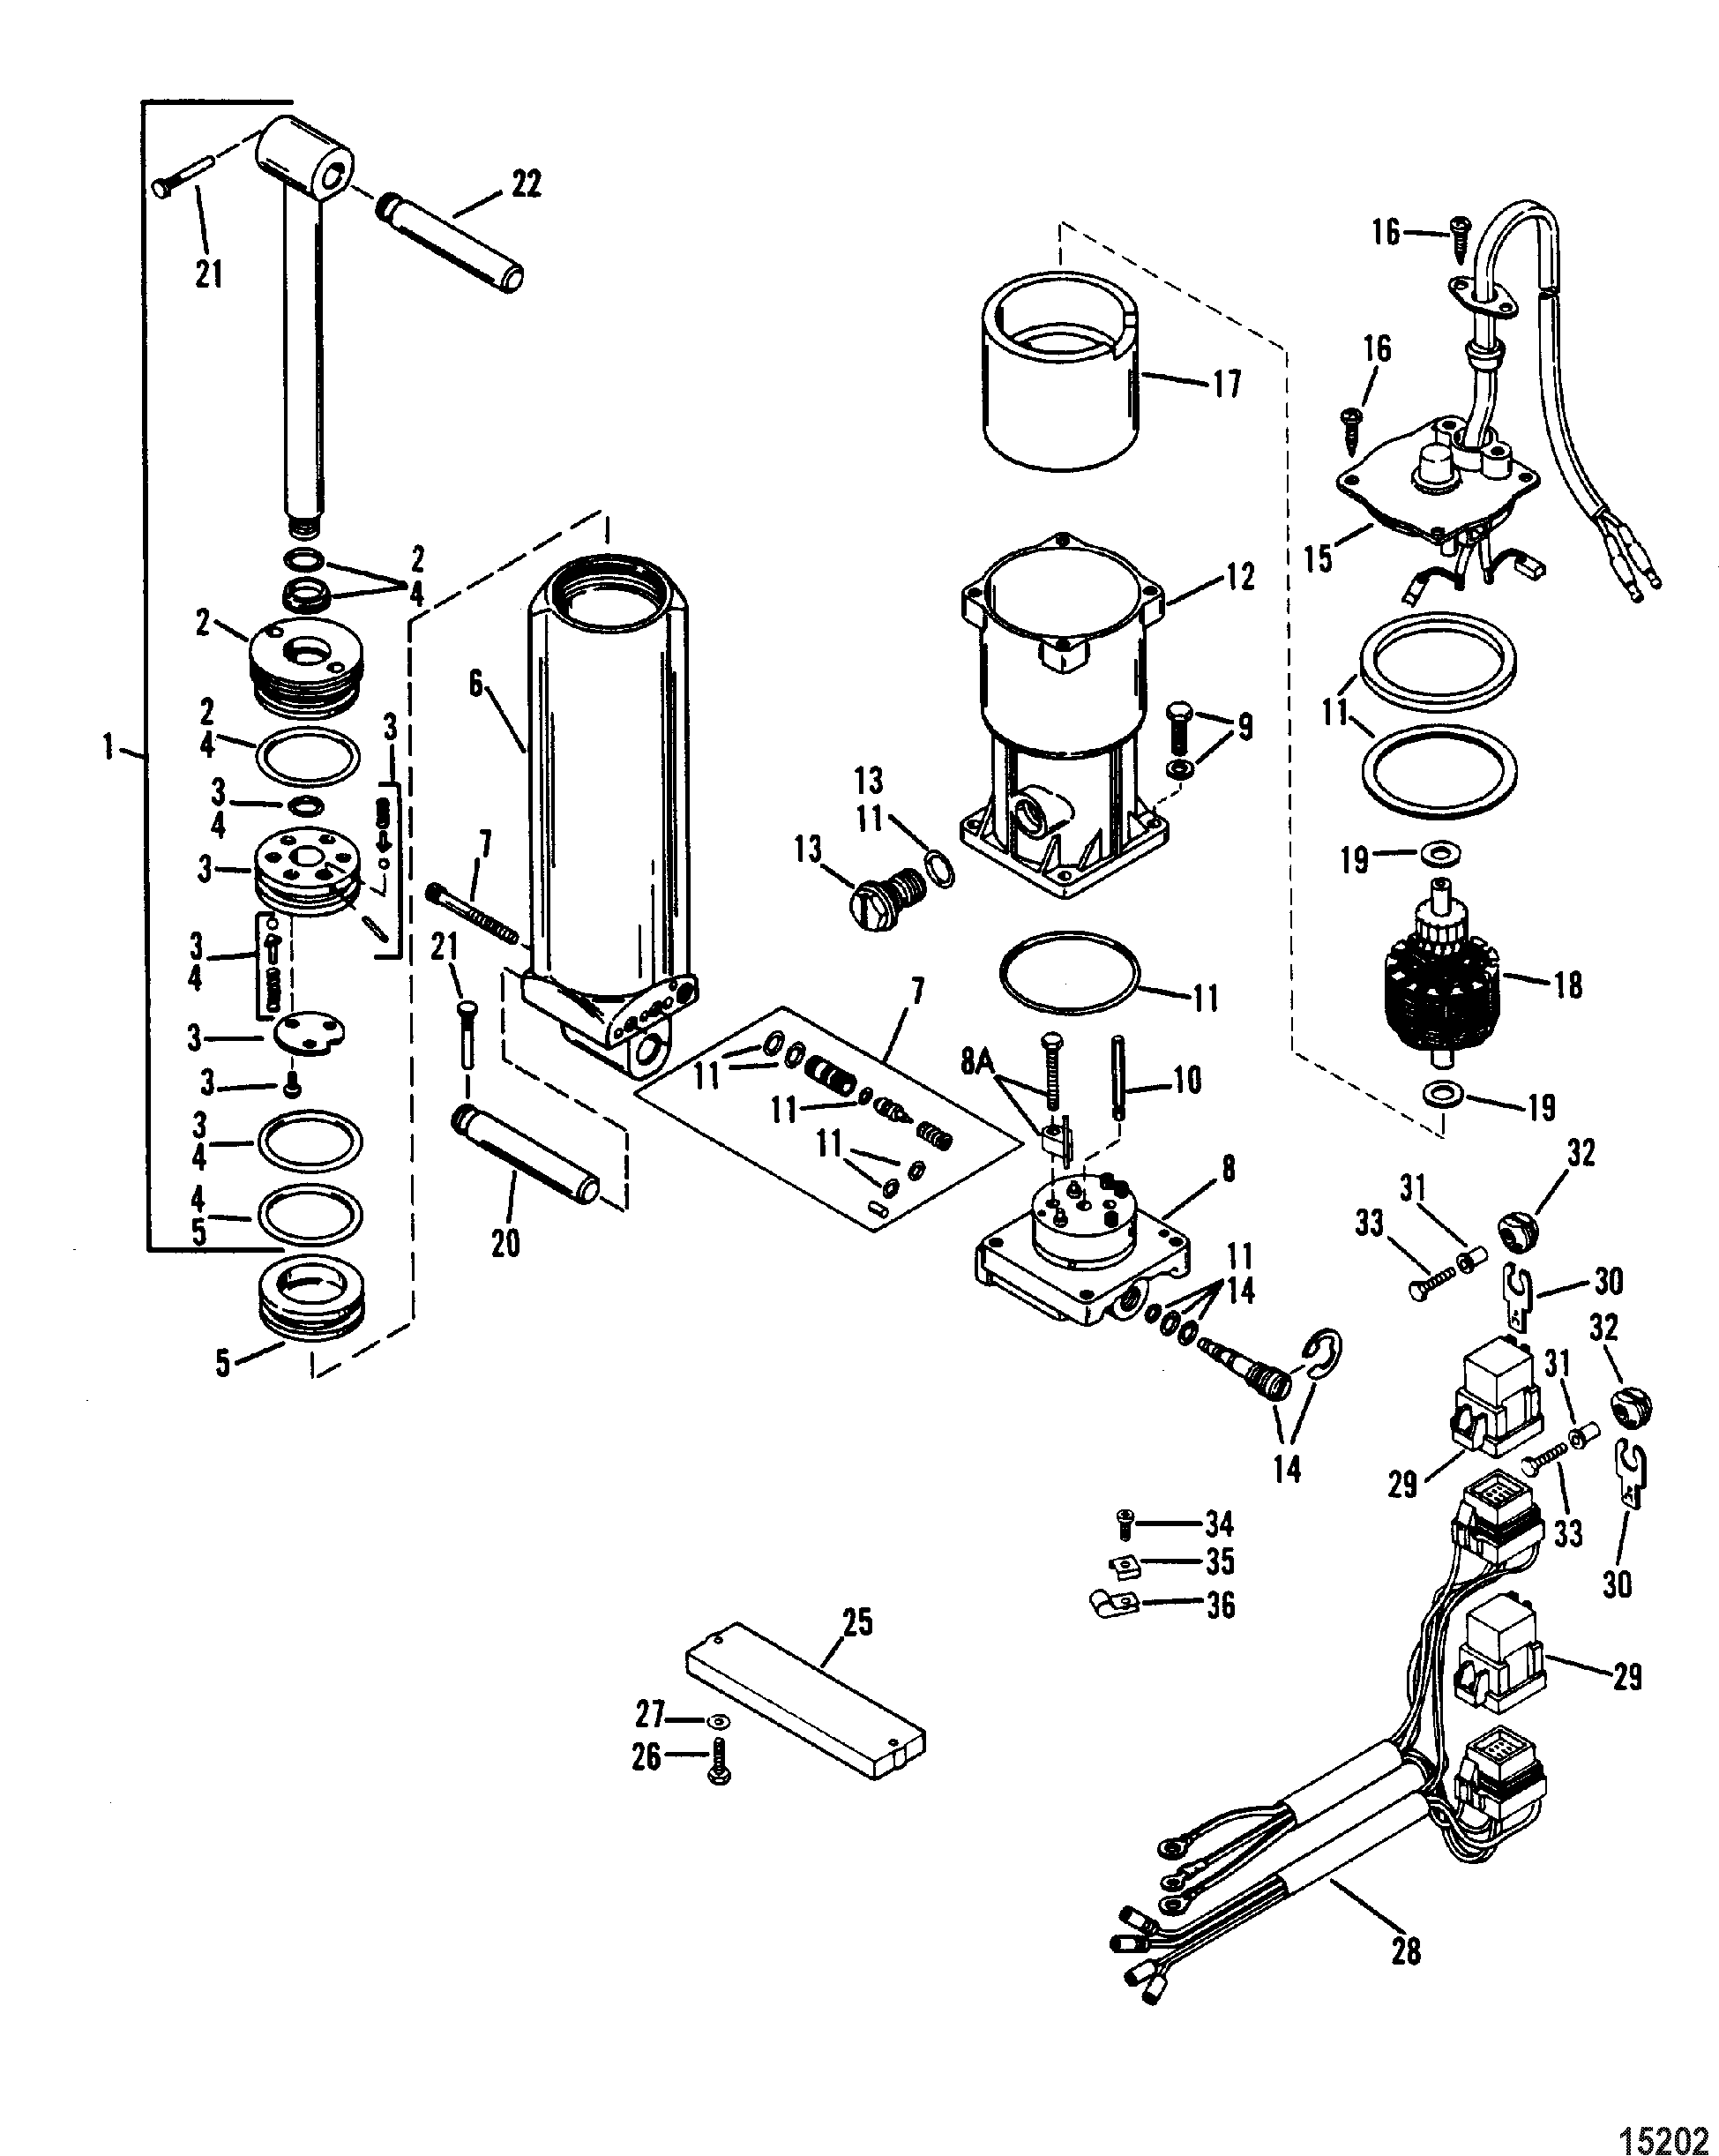 1988 mercury outboard diagram